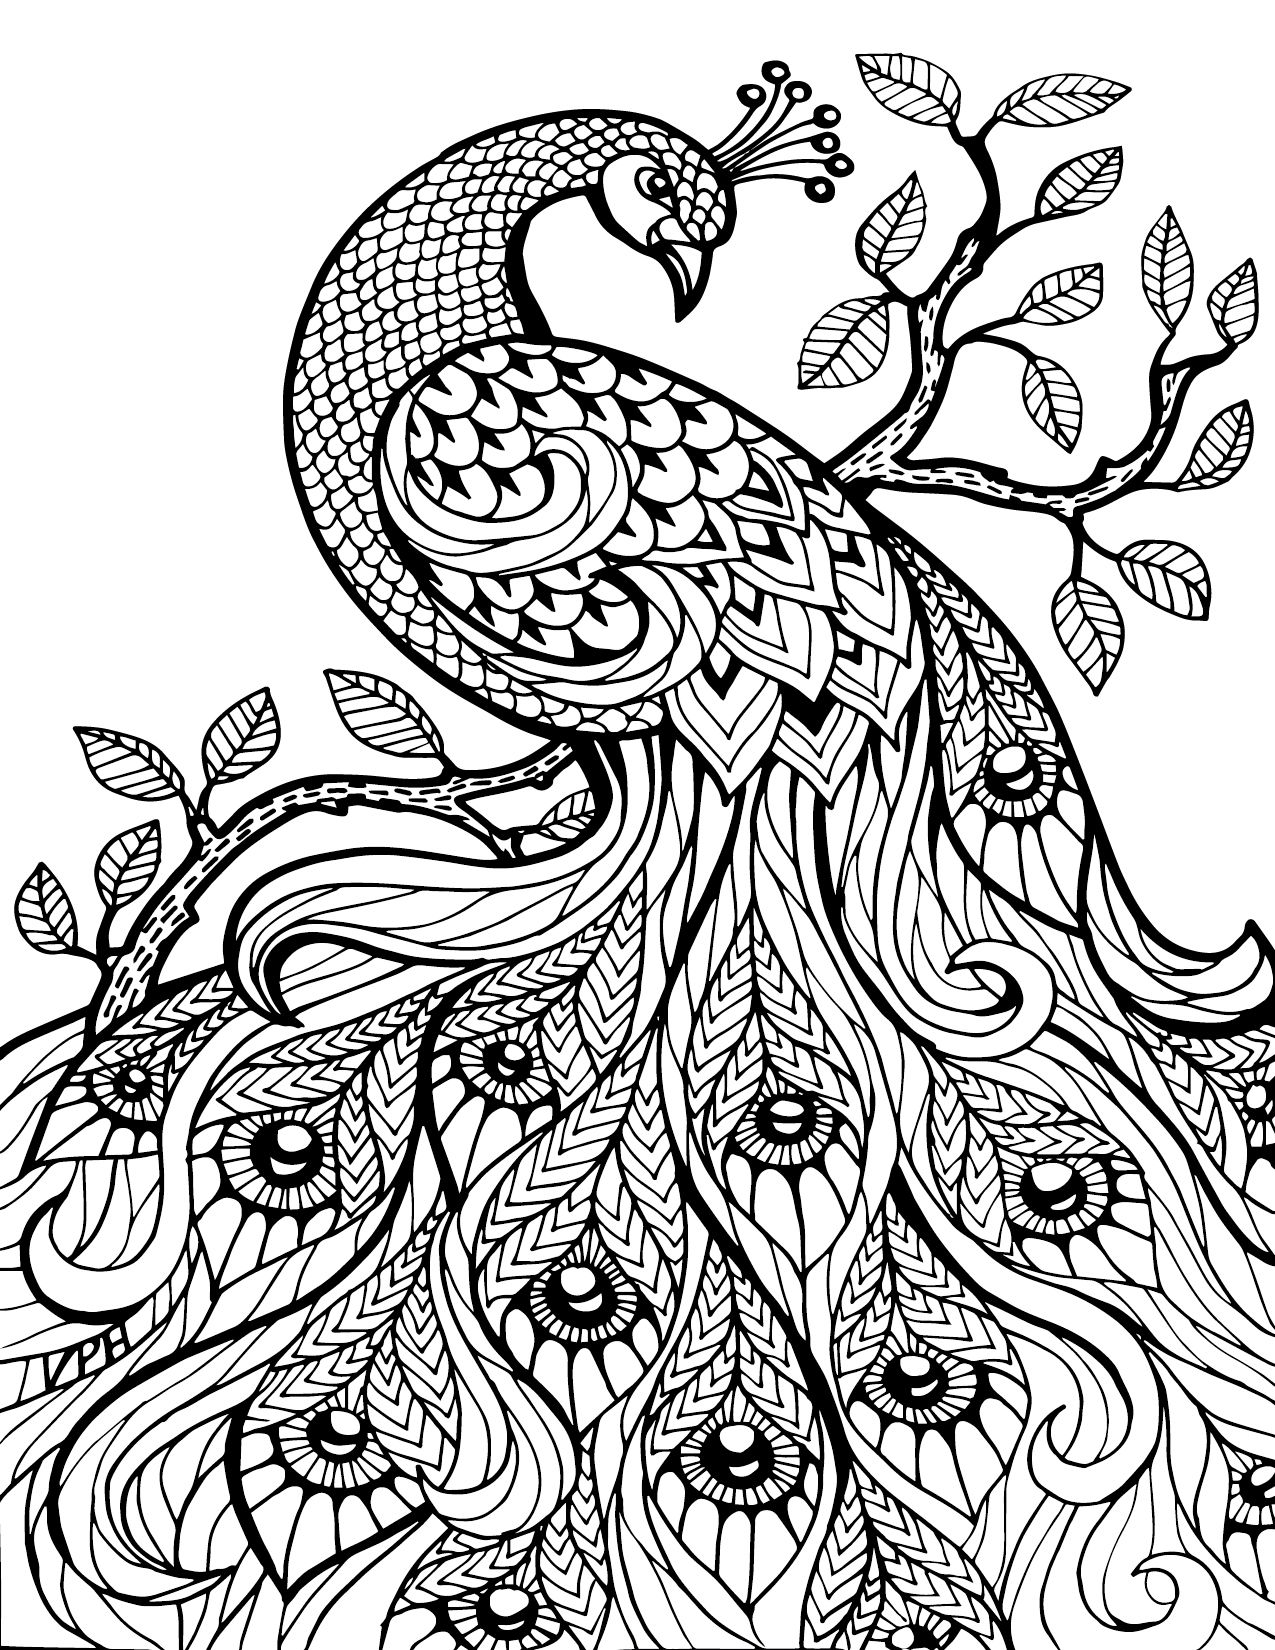 Free printable coloring in pages - Free Printable Coloring Pages For Adults Only Image 36 Art Davlin Publishing